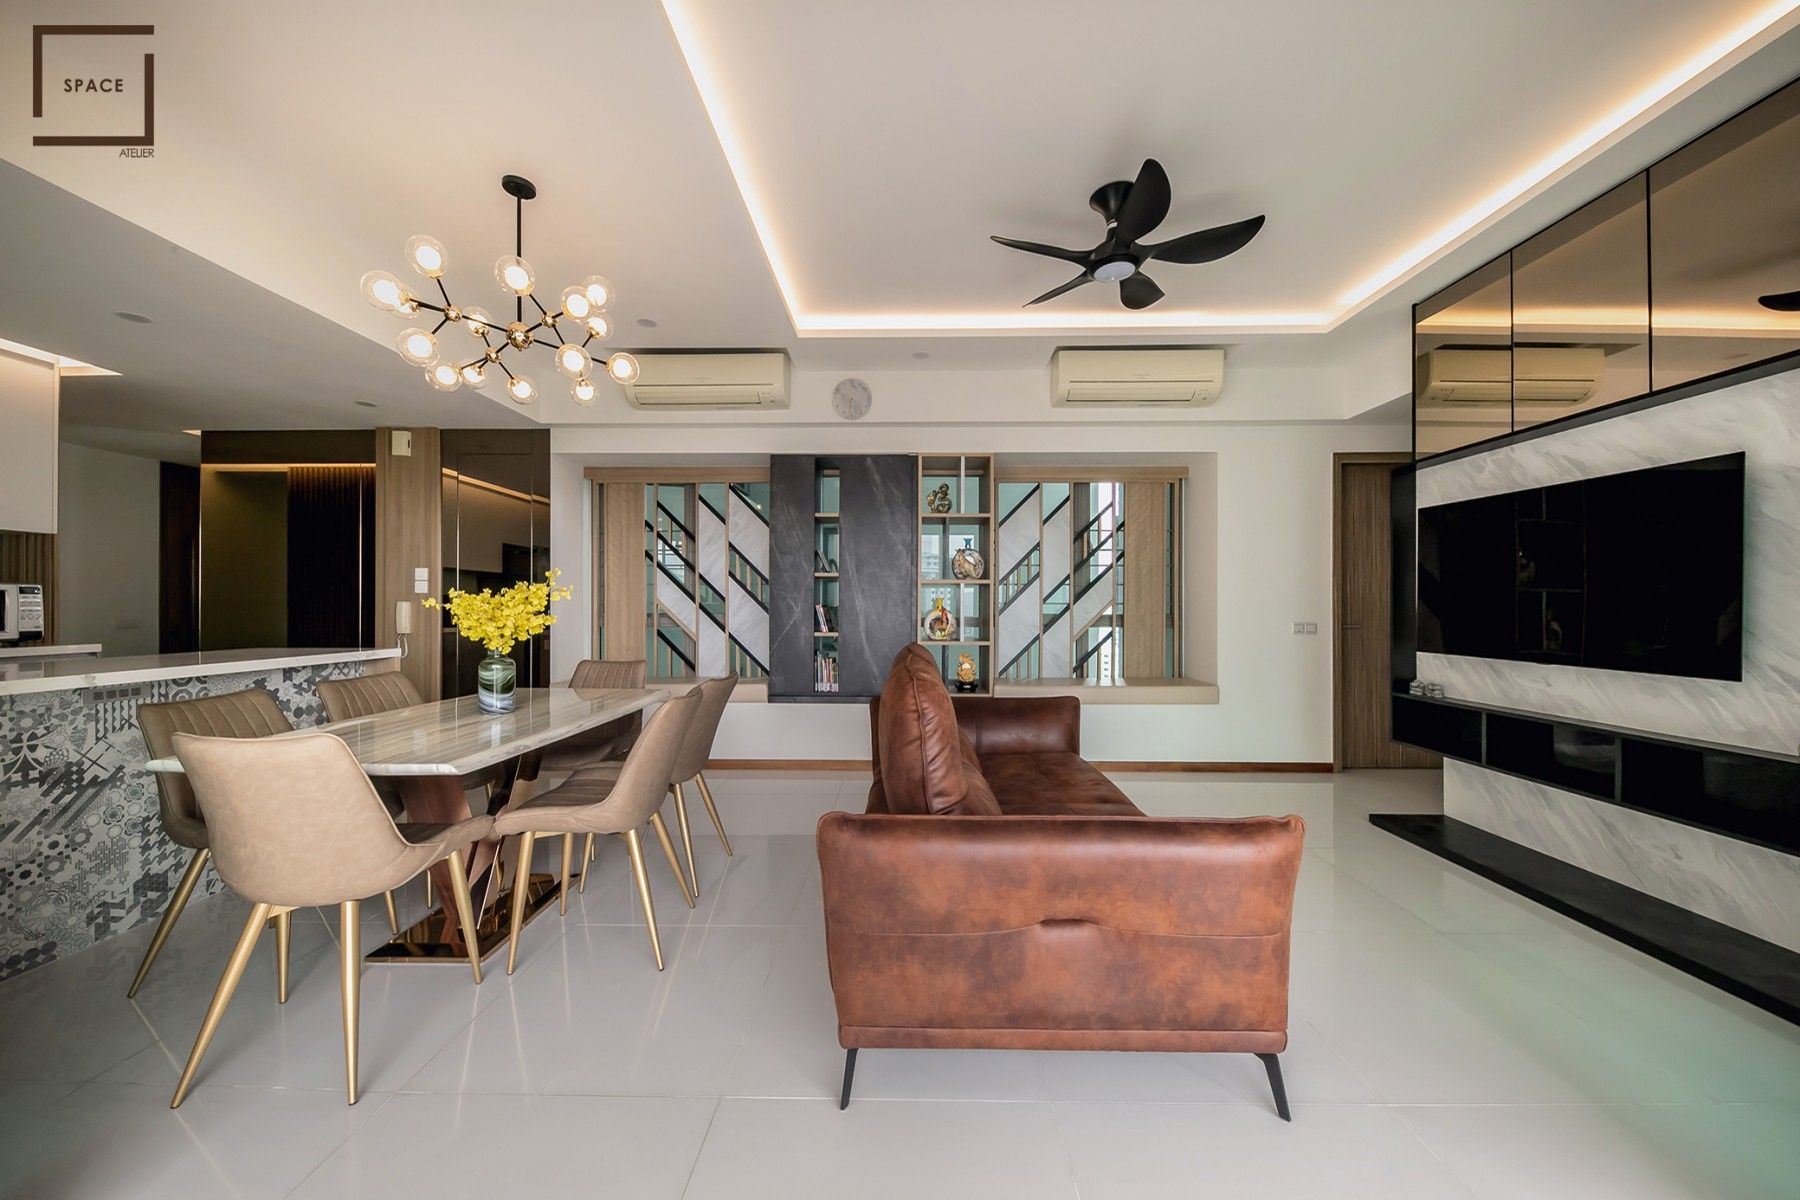 Projects By Space Atelier Pte Ltd Browse 70 Latest Interior